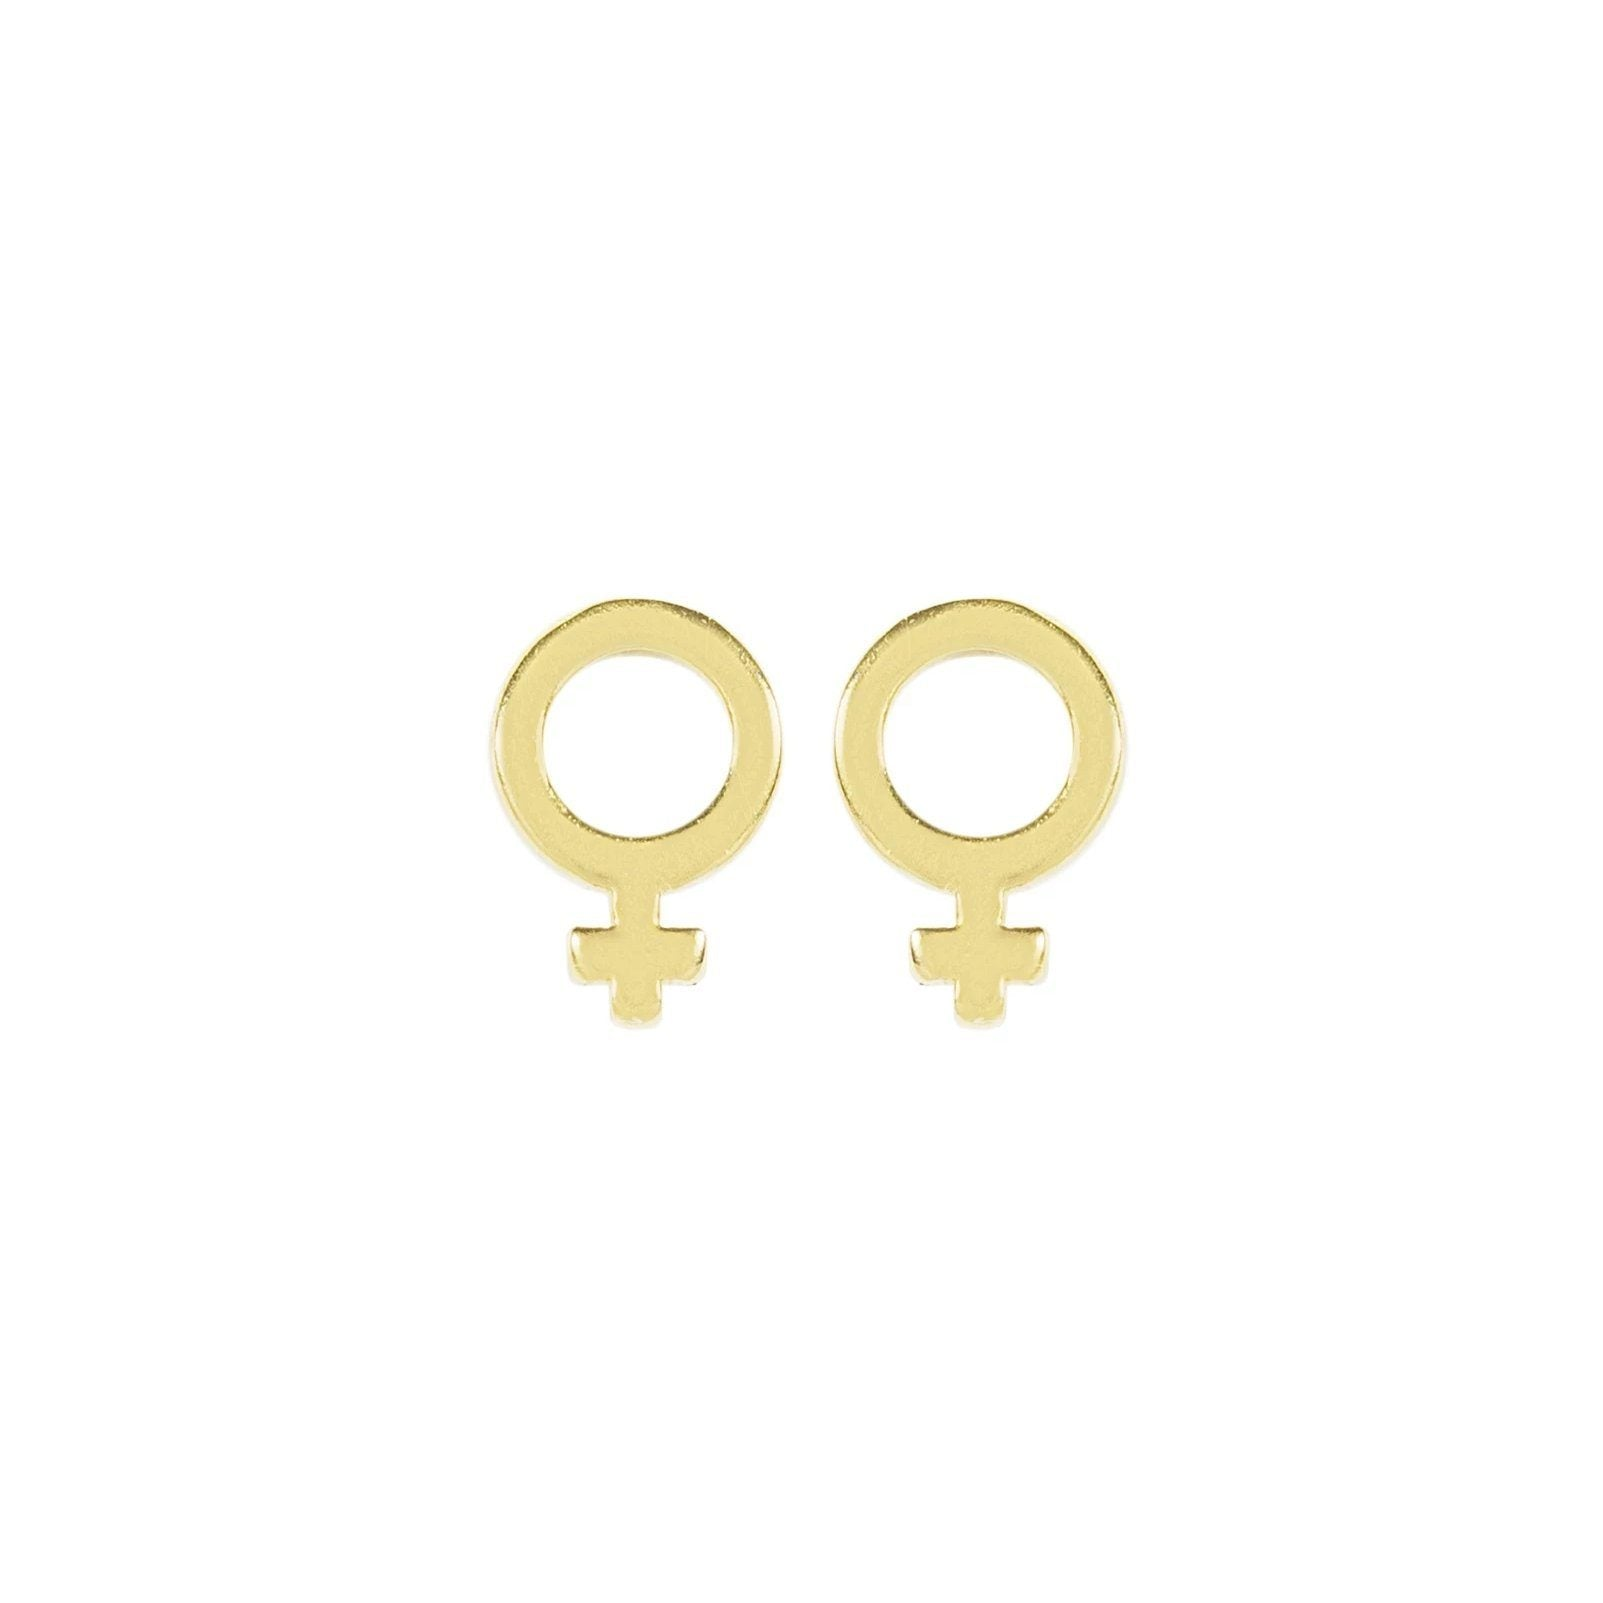 Katie Dean Jewelry Female Symbol Studs